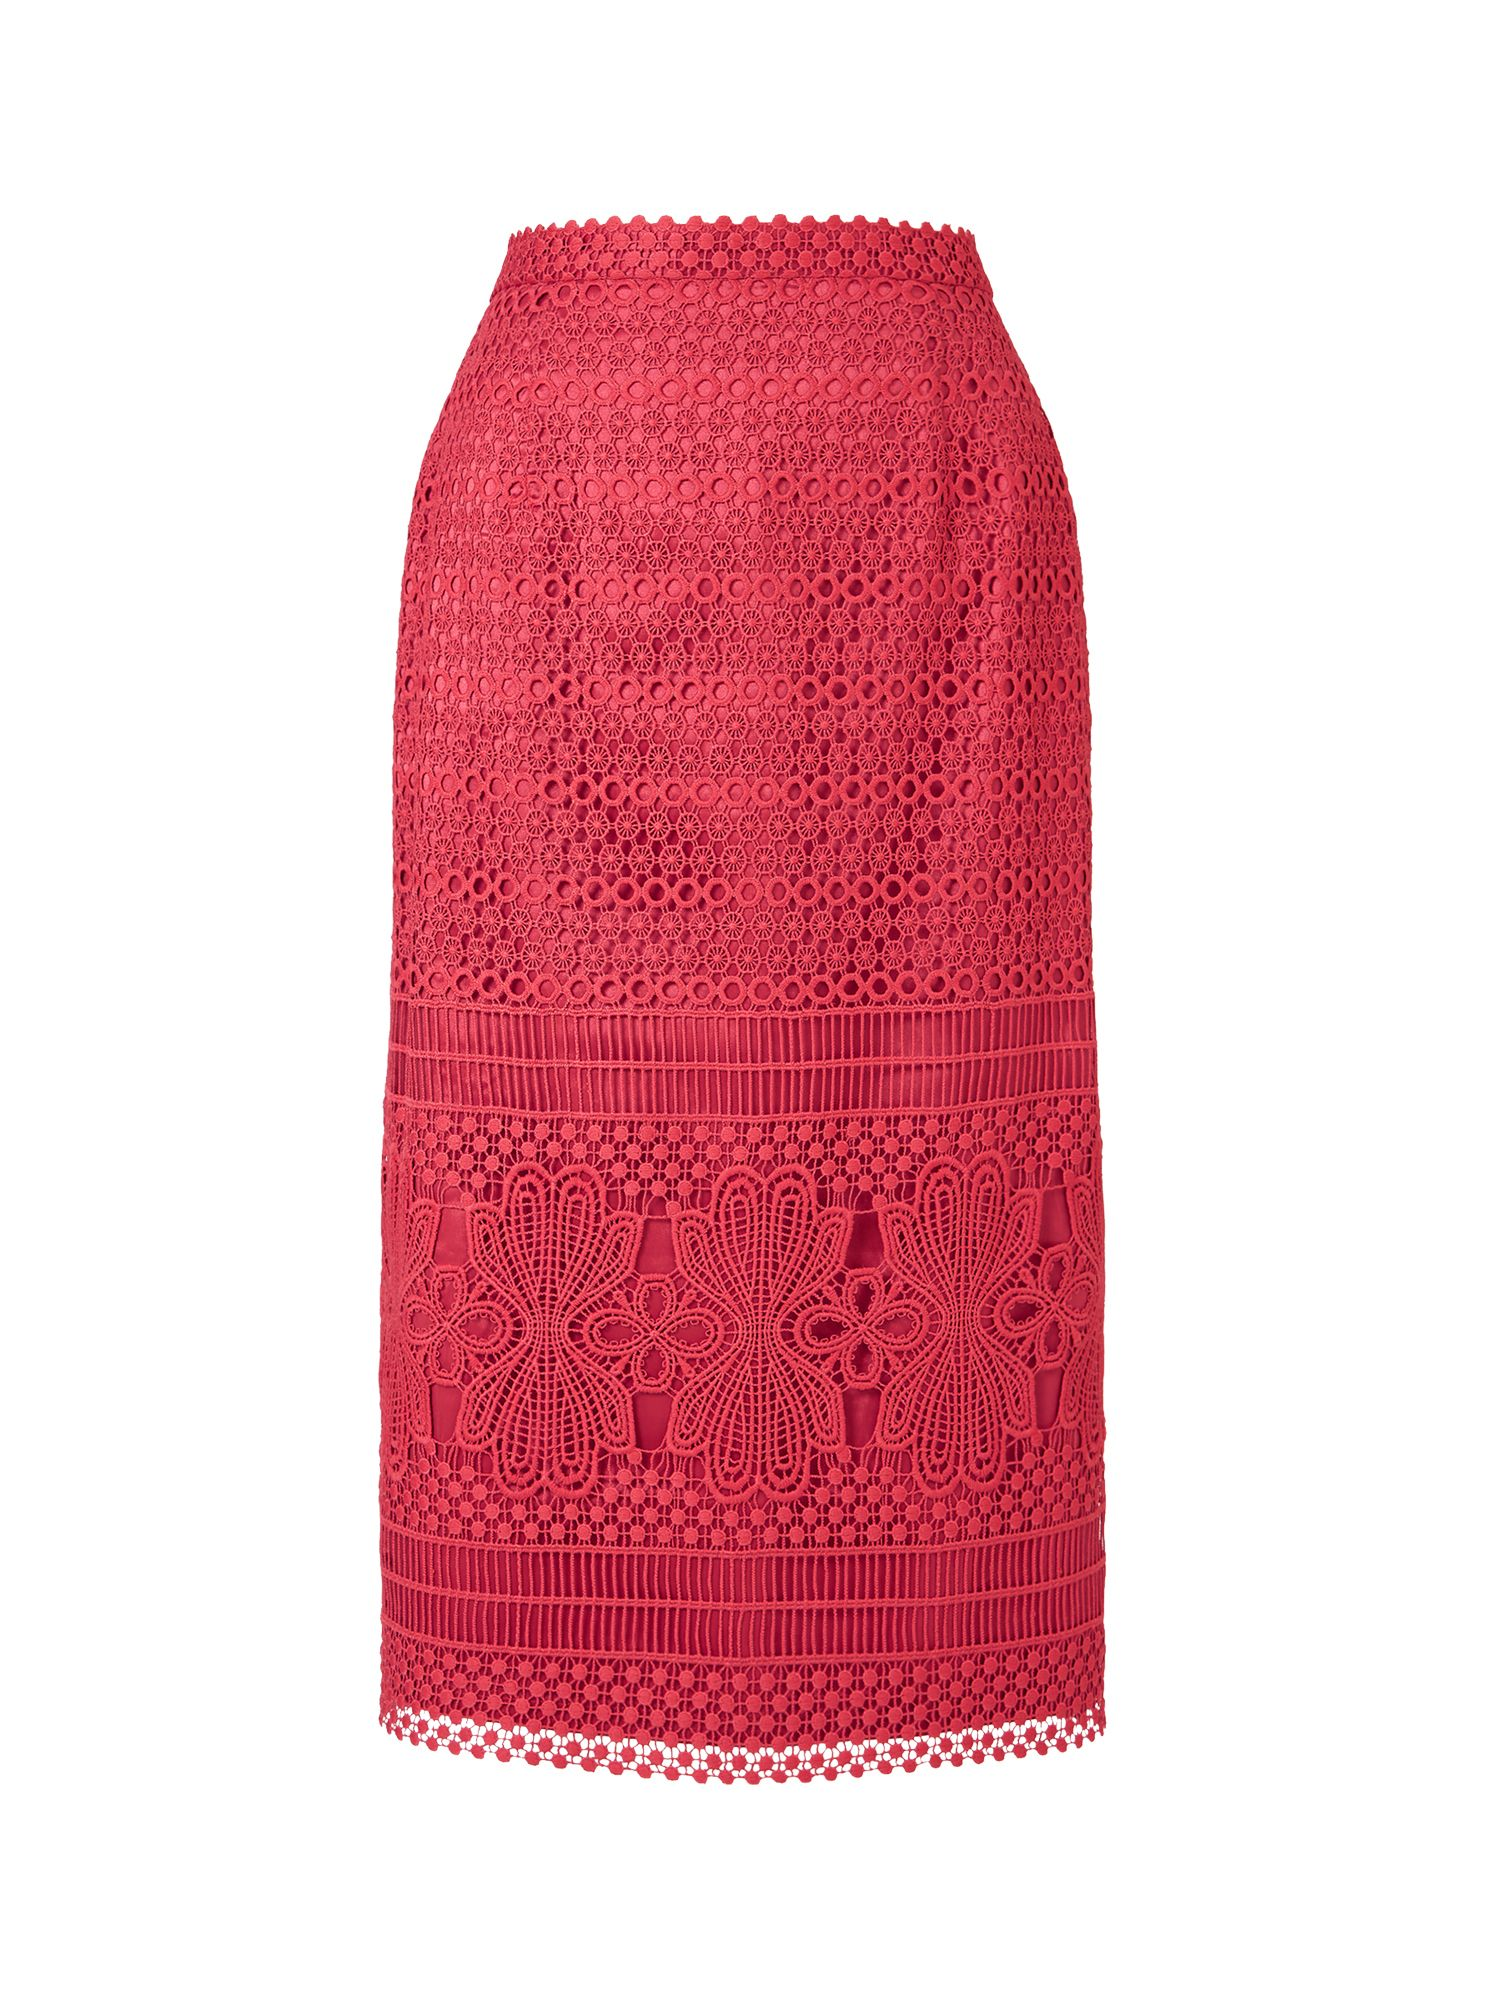 Jacques Vert Geo Lace Skirt, Red